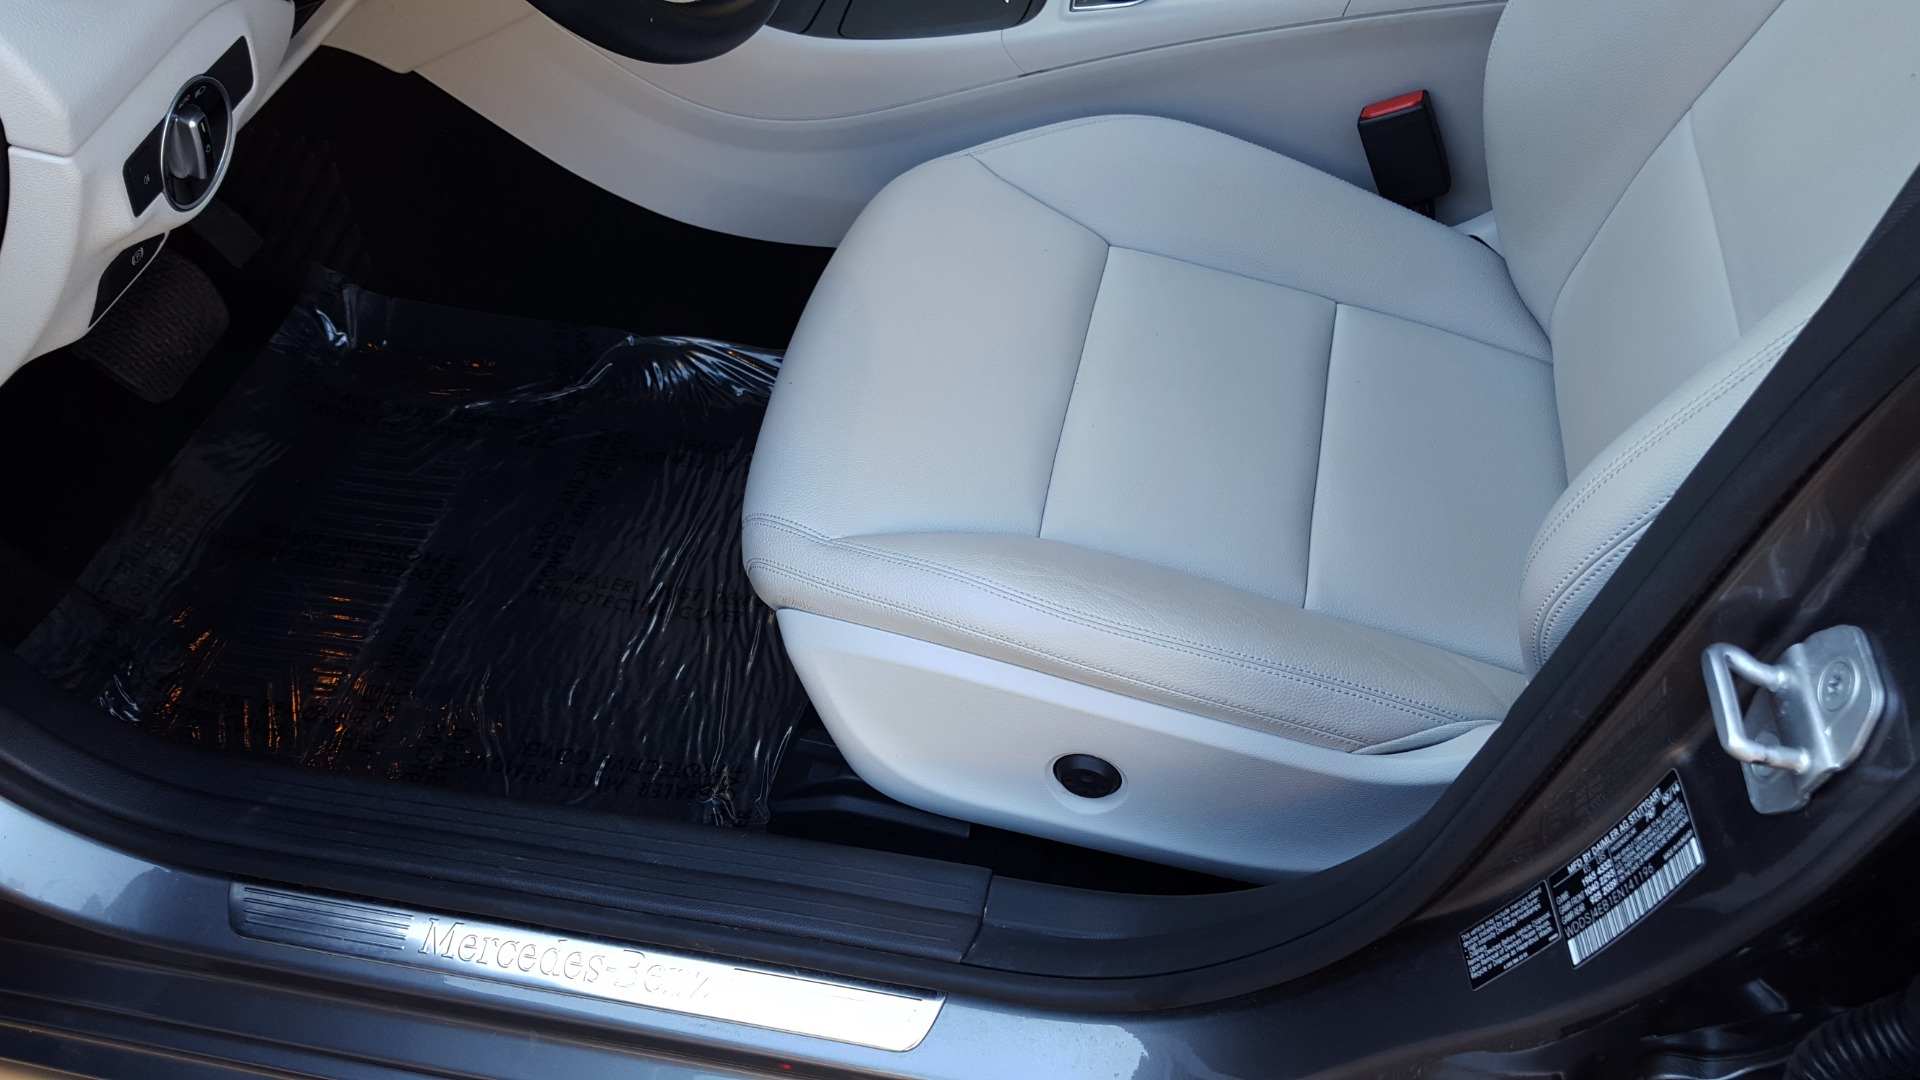 Used 2014 Mercedes-Benz CLA-CLASS CLA 250 / NAV / PANO-ROOF / BLIND SPOT ASSIST / XENON HEADLIGHTS for sale $19,995 at Formula Imports in Charlotte NC 28227 27